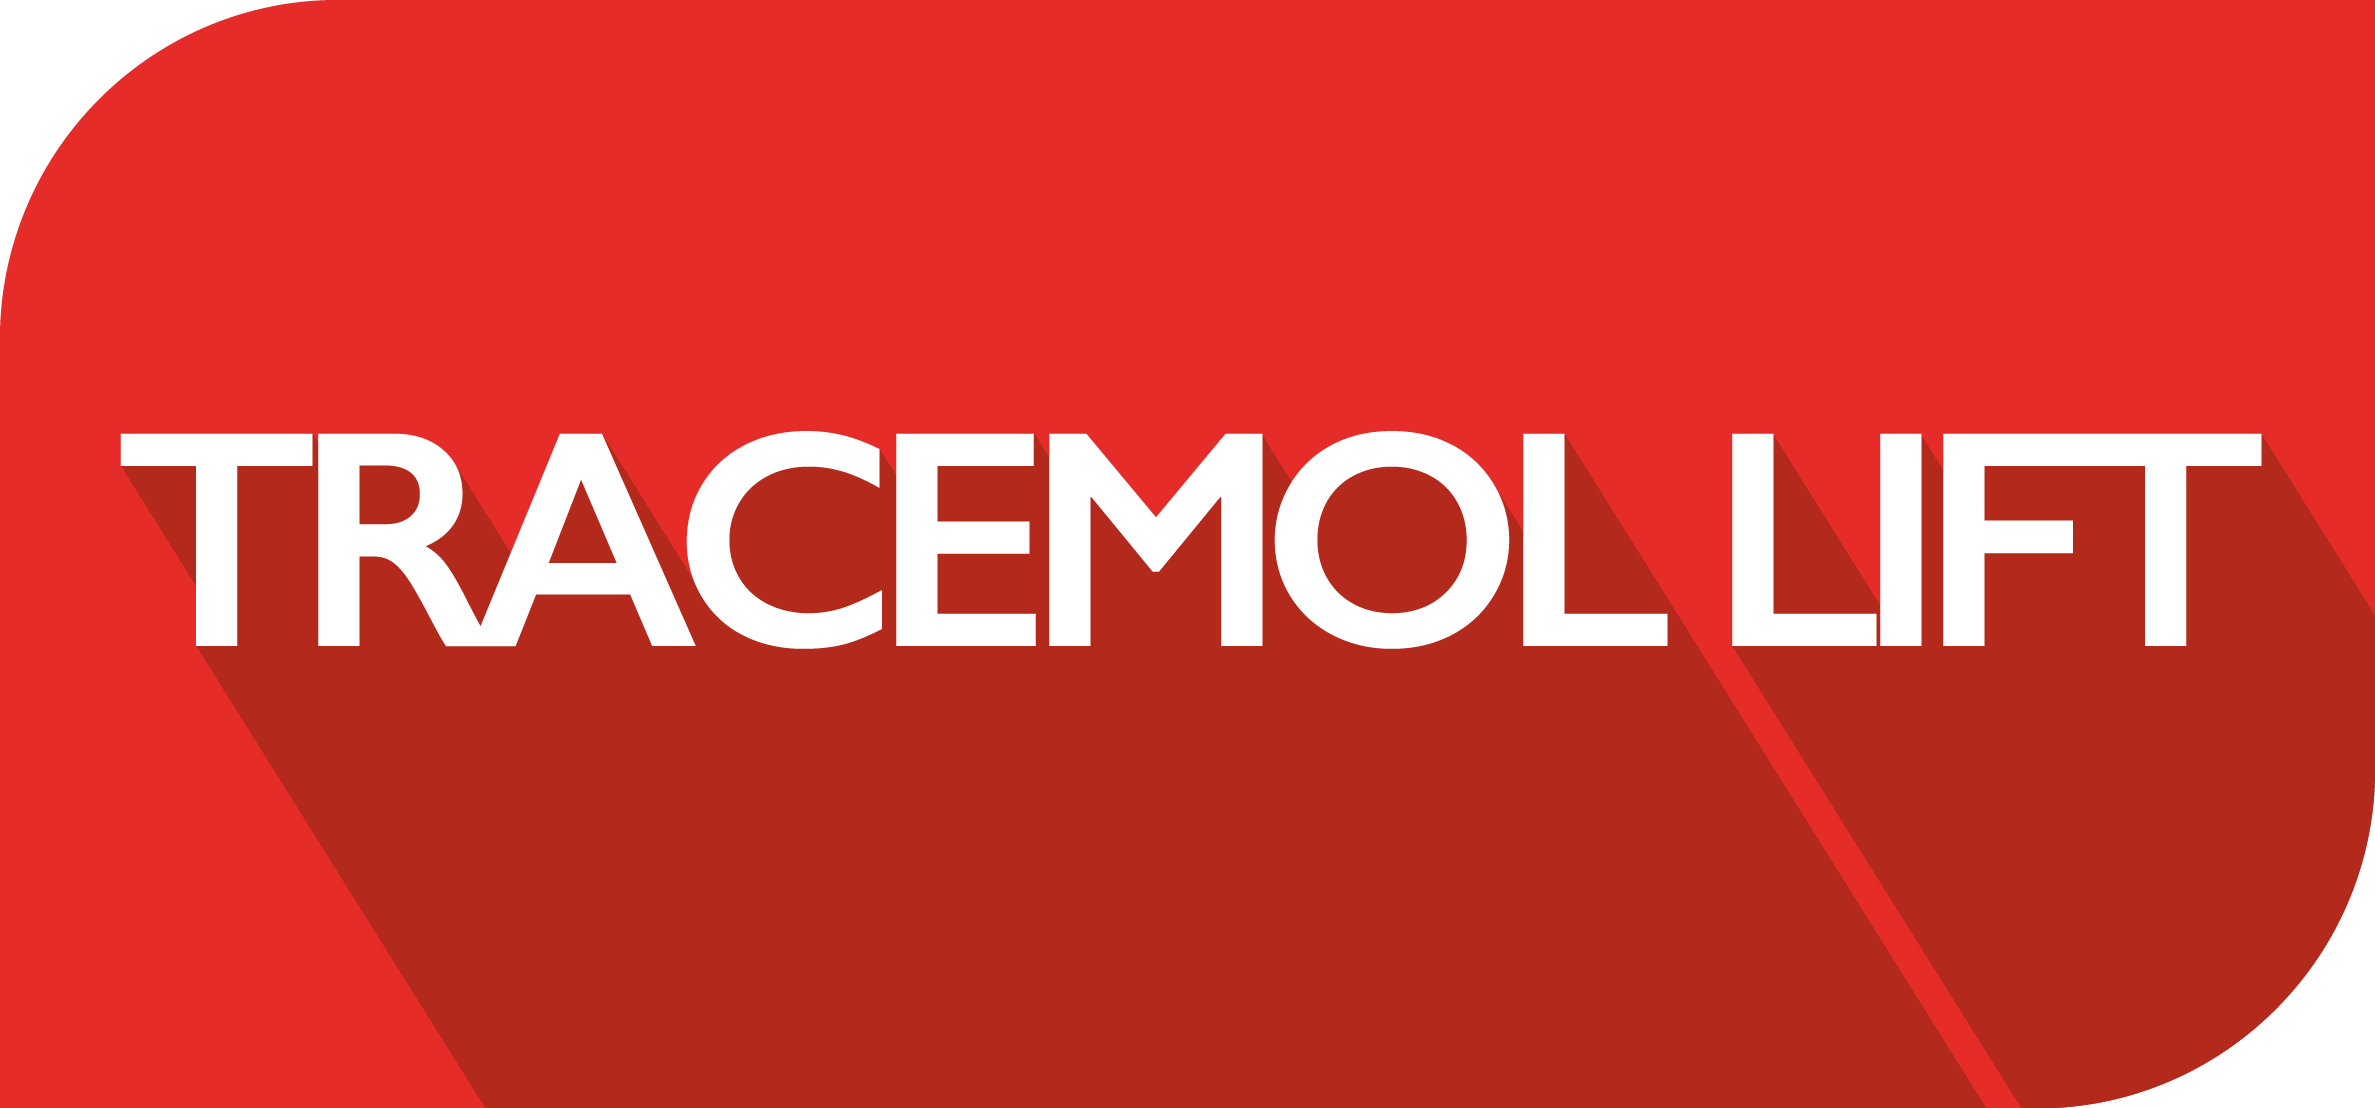 Tracemol Lift.png